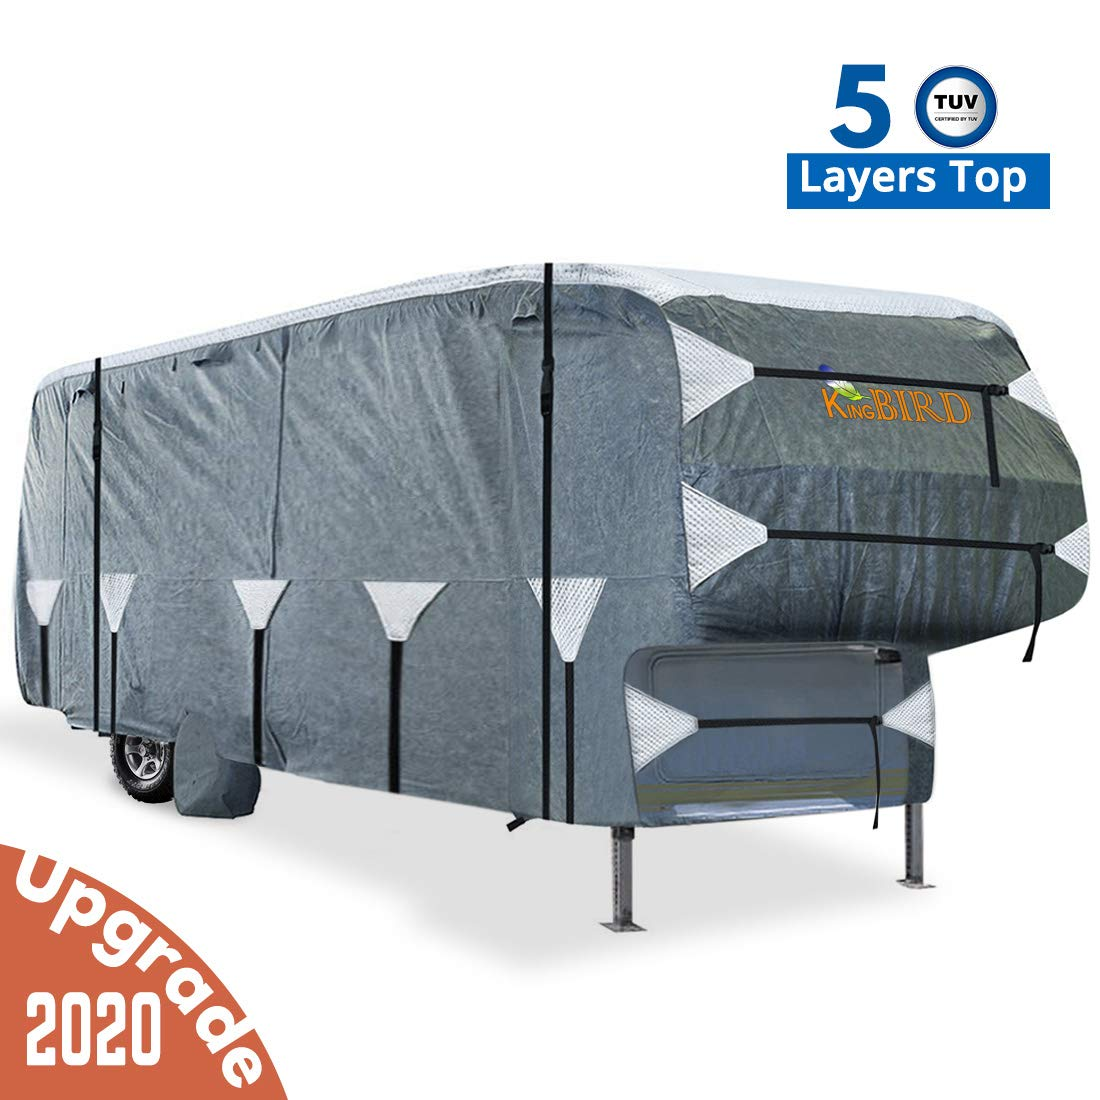 KING BIRD Extra-Thick 5-Ply Top Panel & 4Pcs Tire Covers Deluxe 5th Wheel RV Cover, Fits 37'-41' RV Cover -Breathable Water-Repellent Rip-Stop Anti-UV with Storage Bag (37'-41')